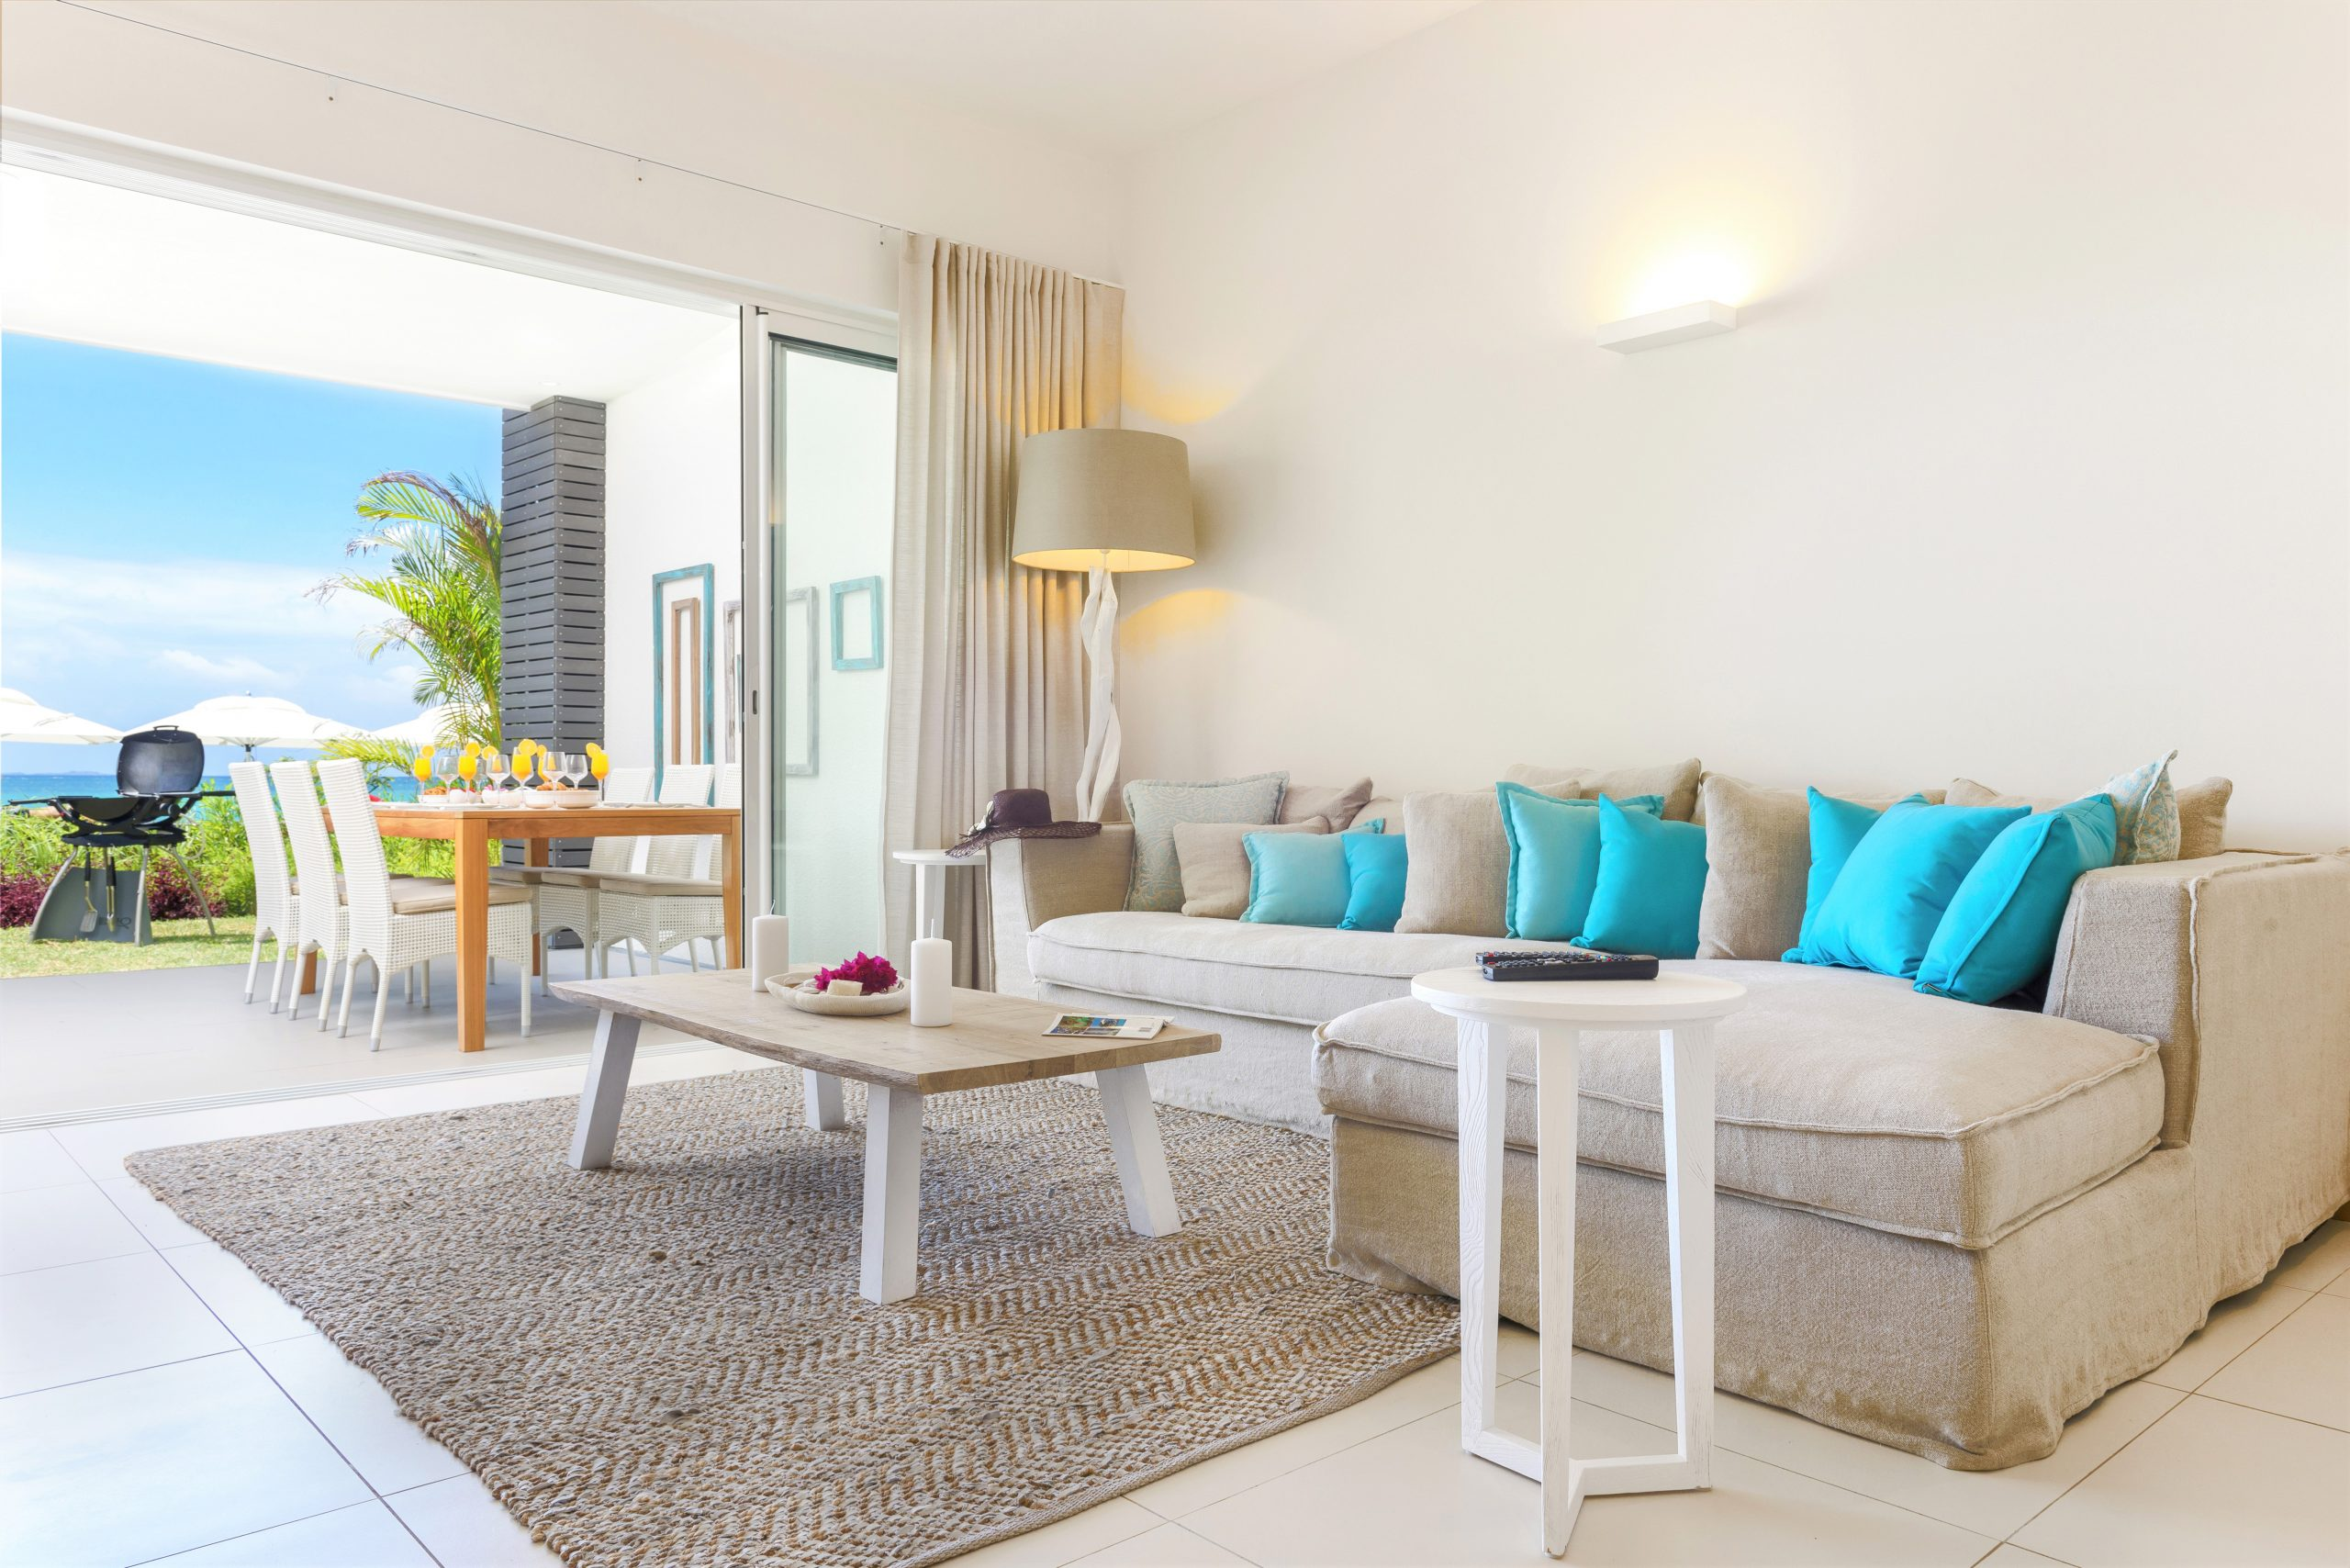 Myra-Seafront-Suites-Penthouses-SUITE-Lounge-area-scaled.jpg